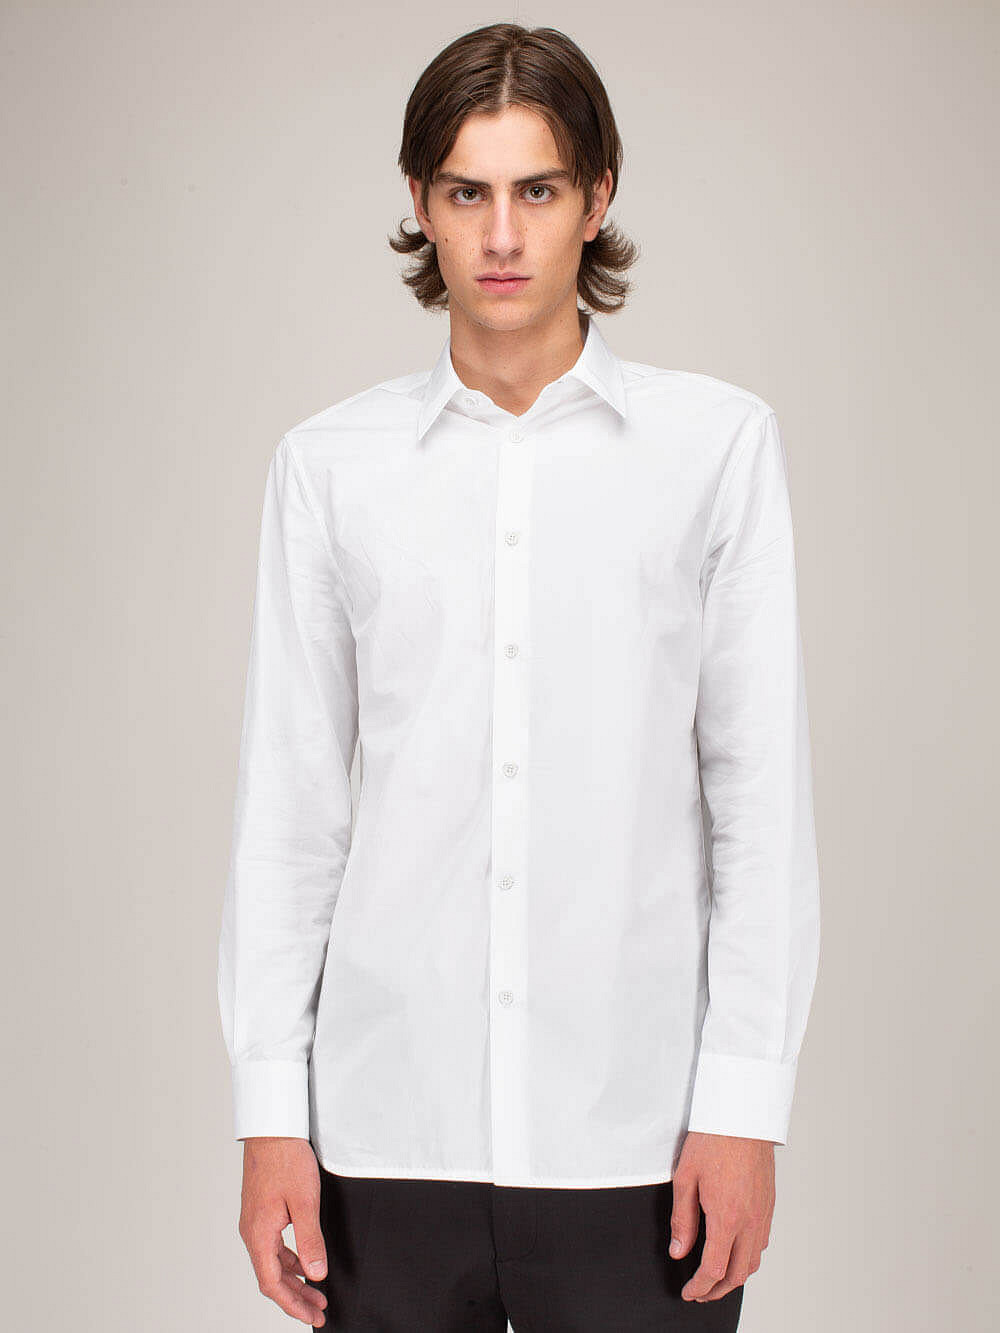 Shirt Fine Cotton Popeline